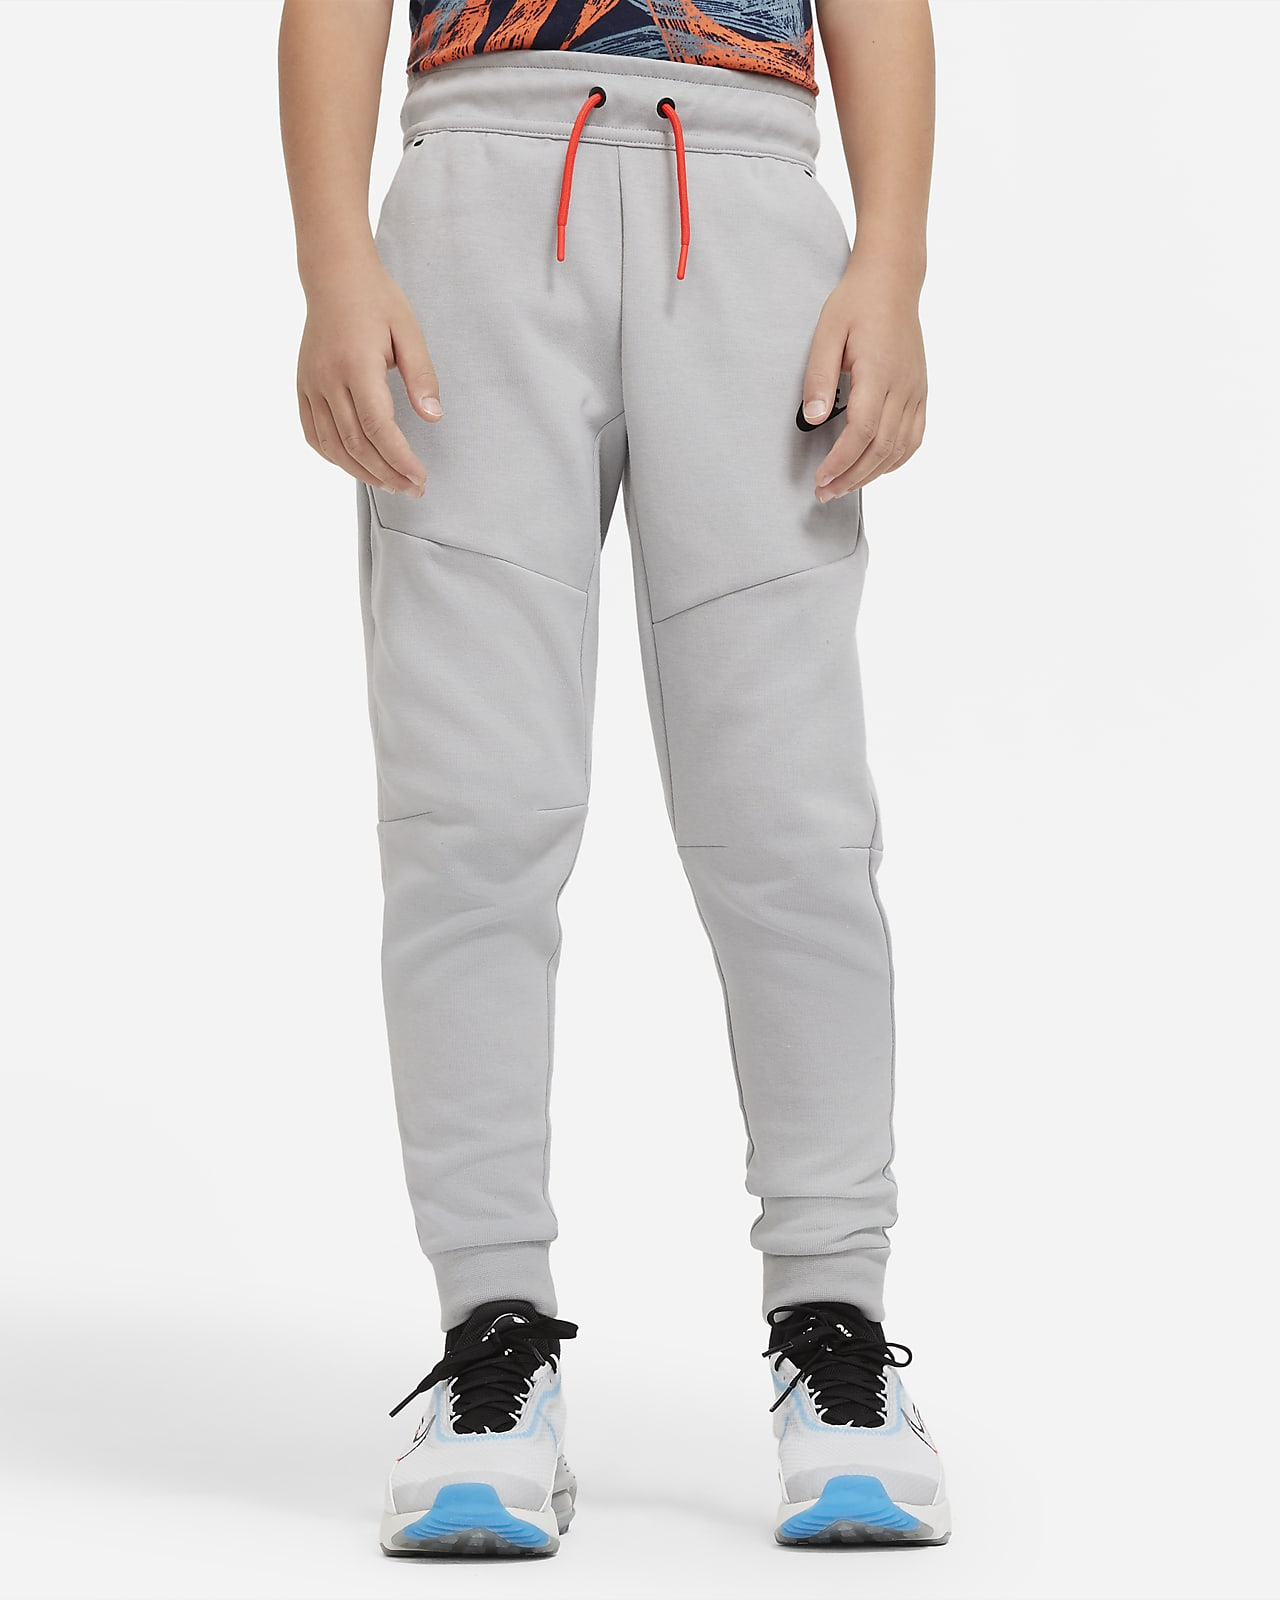 Nike Sportswear Tech Fleece Older Kids (Boys') Trousers